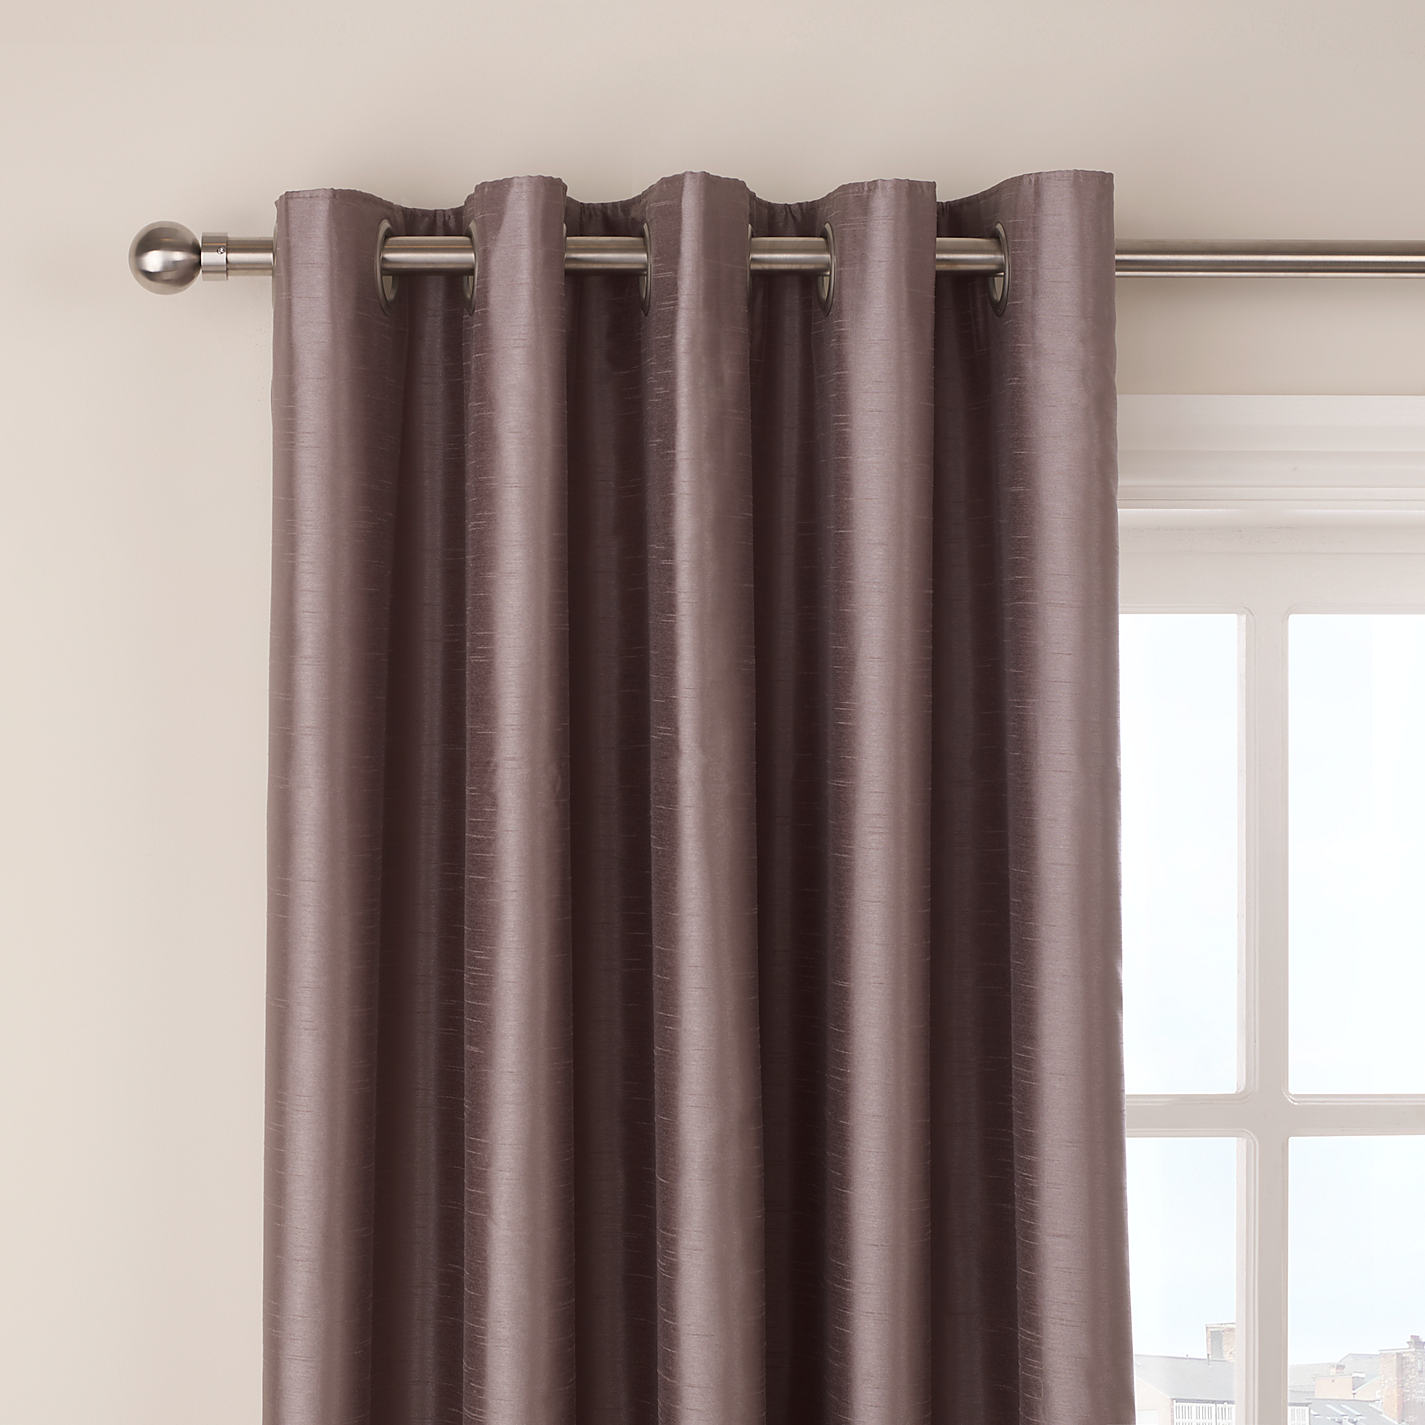 Curtain Rods Kohls | Kohls Drapes | Room Darkening Drapes